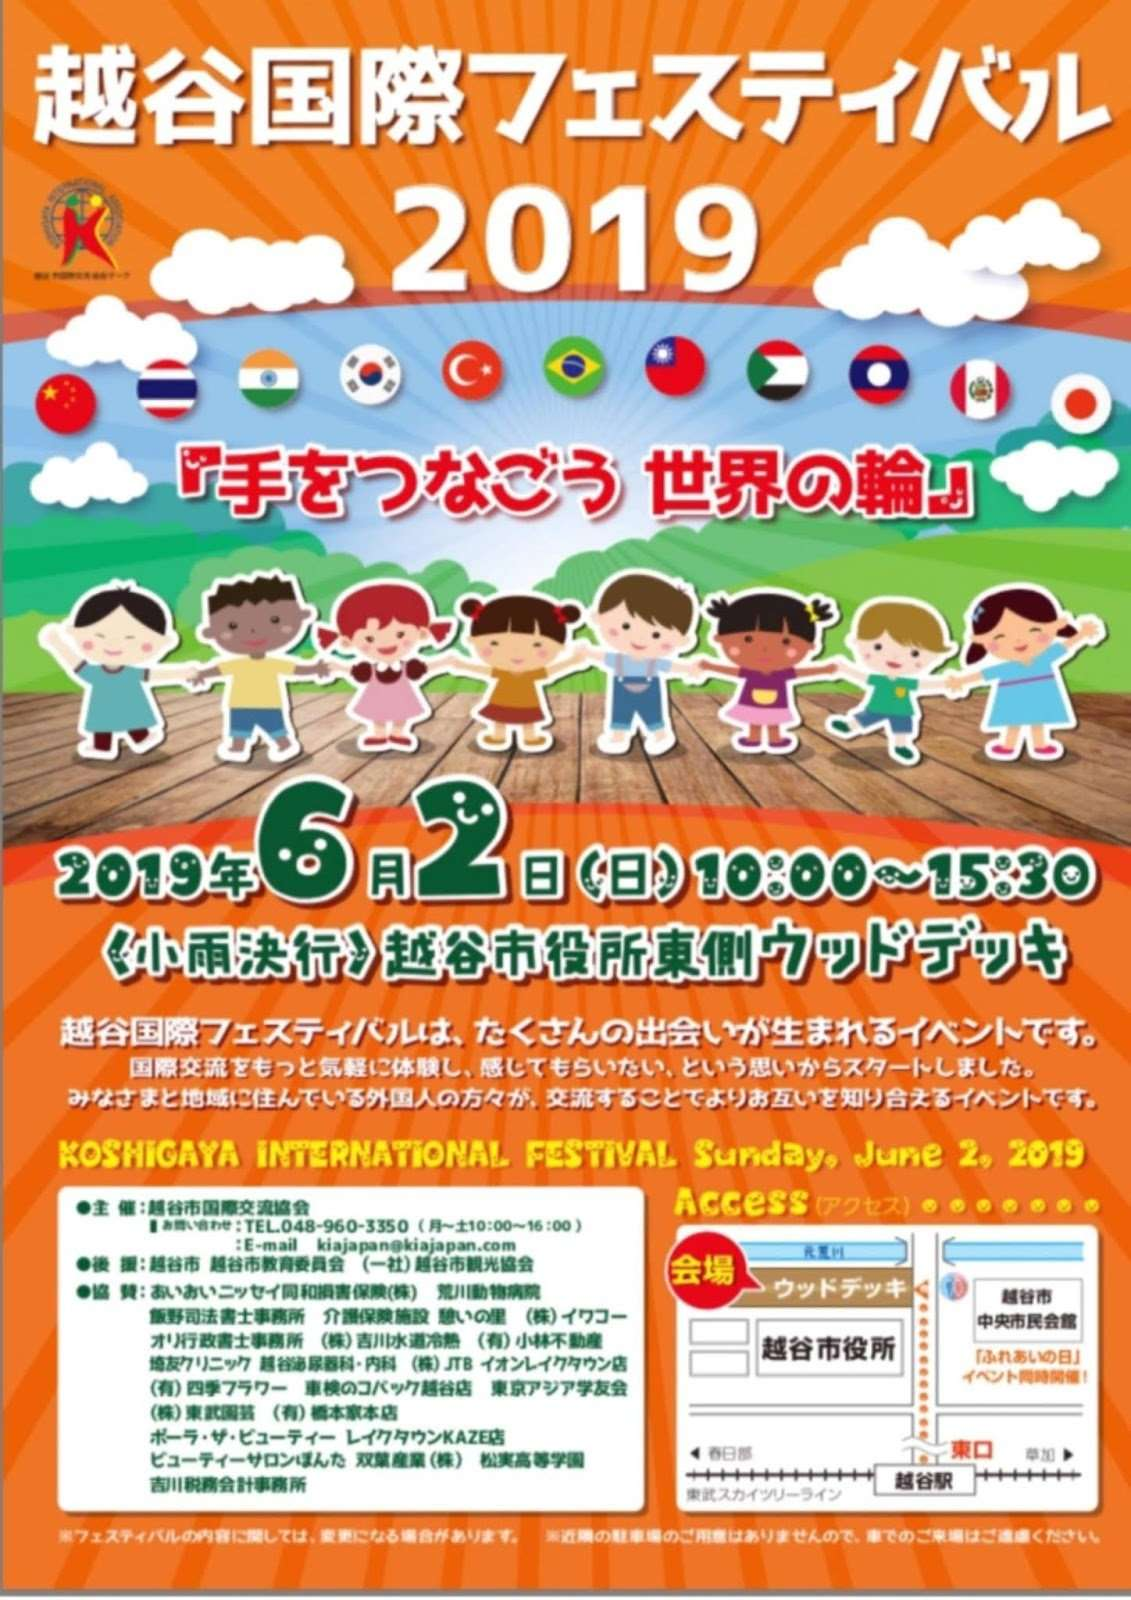 koshigaya international festival